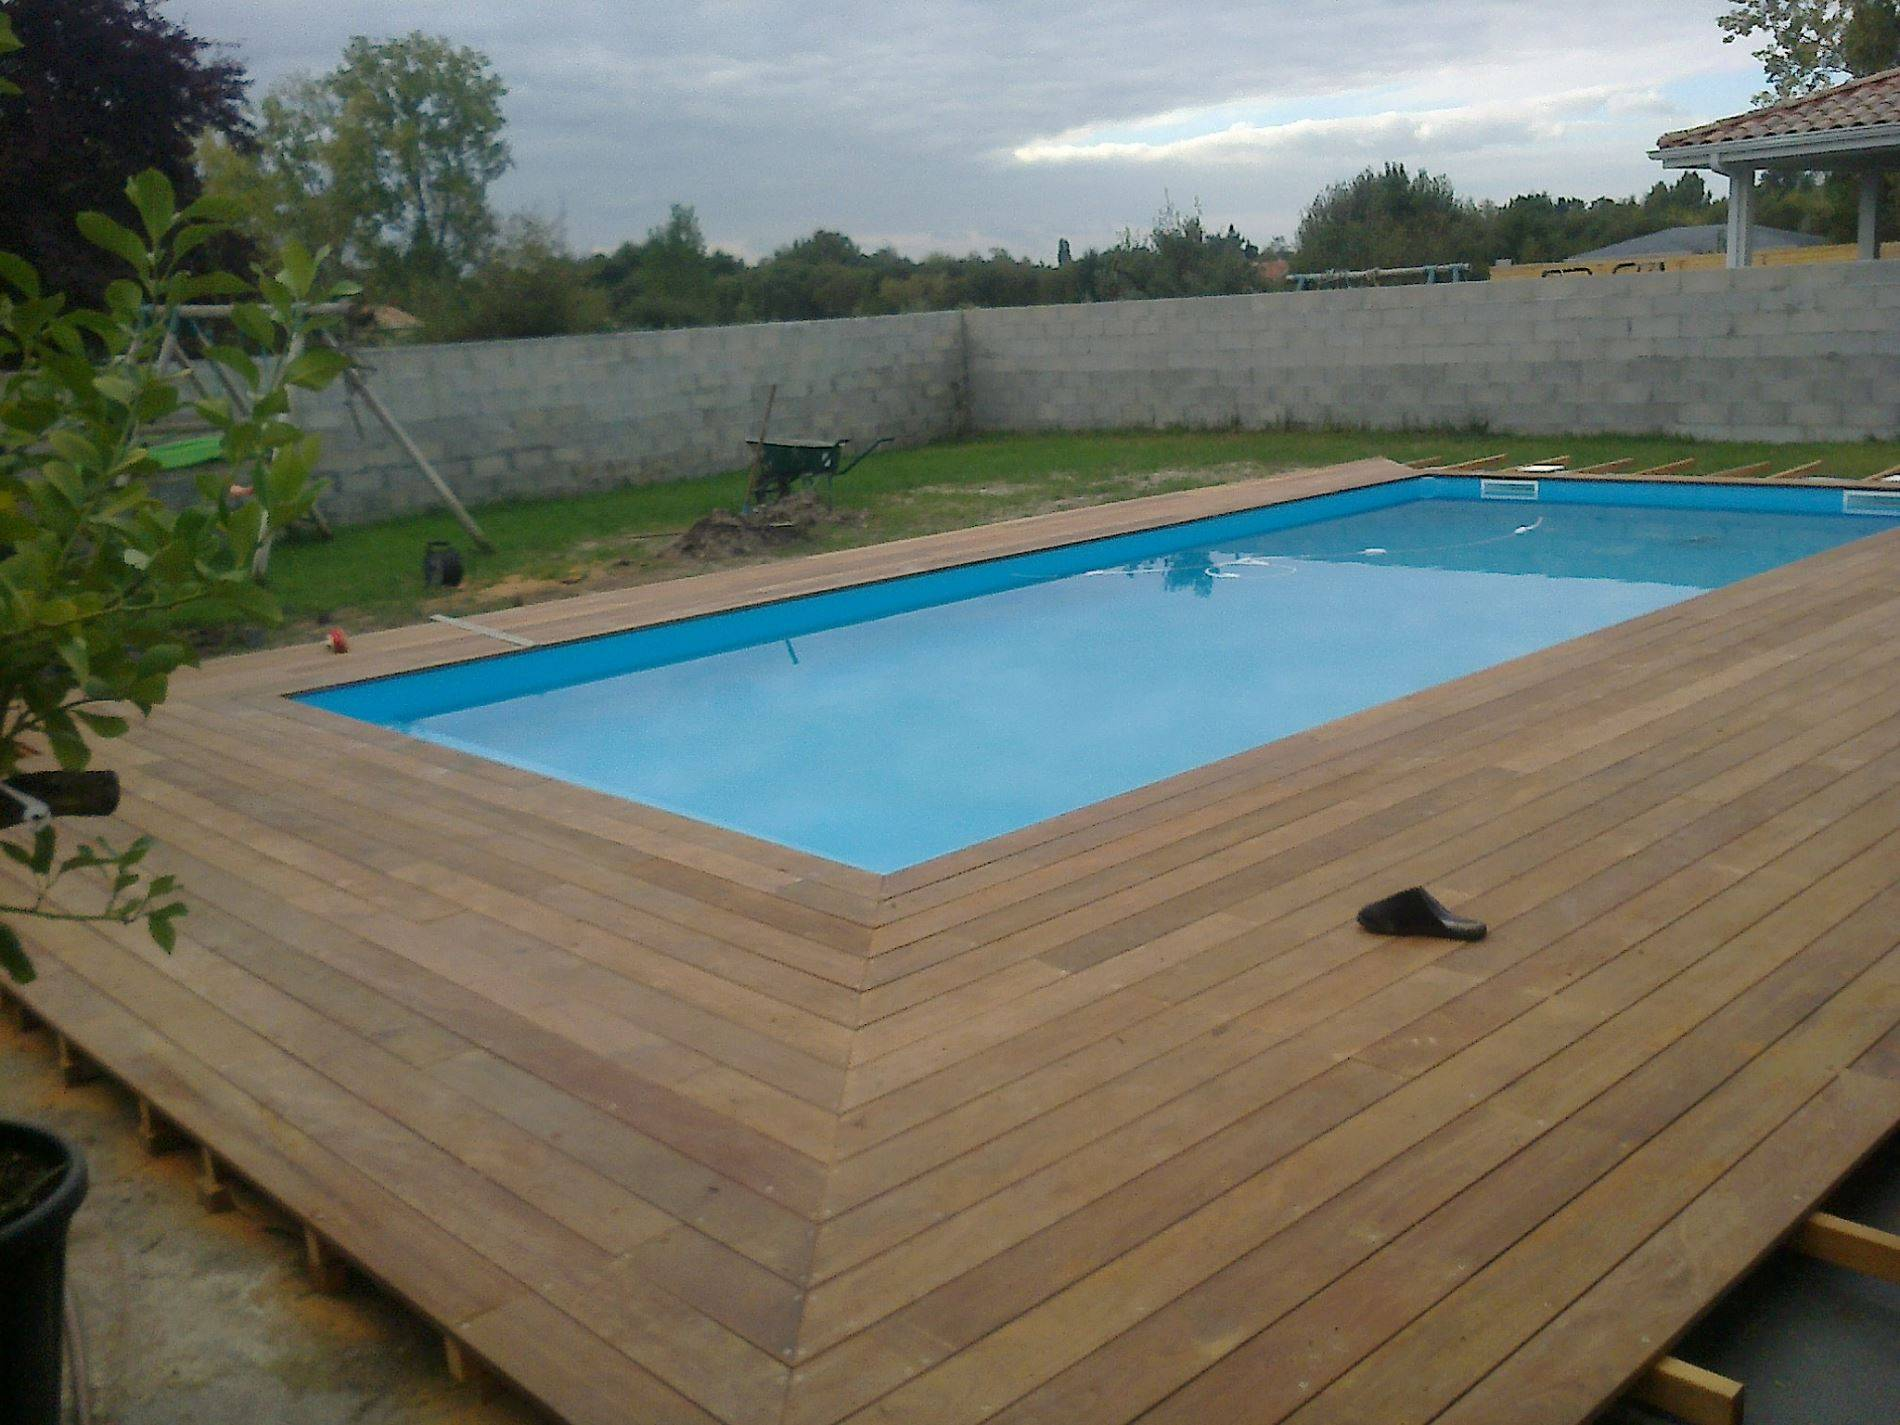 installation de terrasse en bois et contour de piscine m rignac tanch it monteiro 33. Black Bedroom Furniture Sets. Home Design Ideas